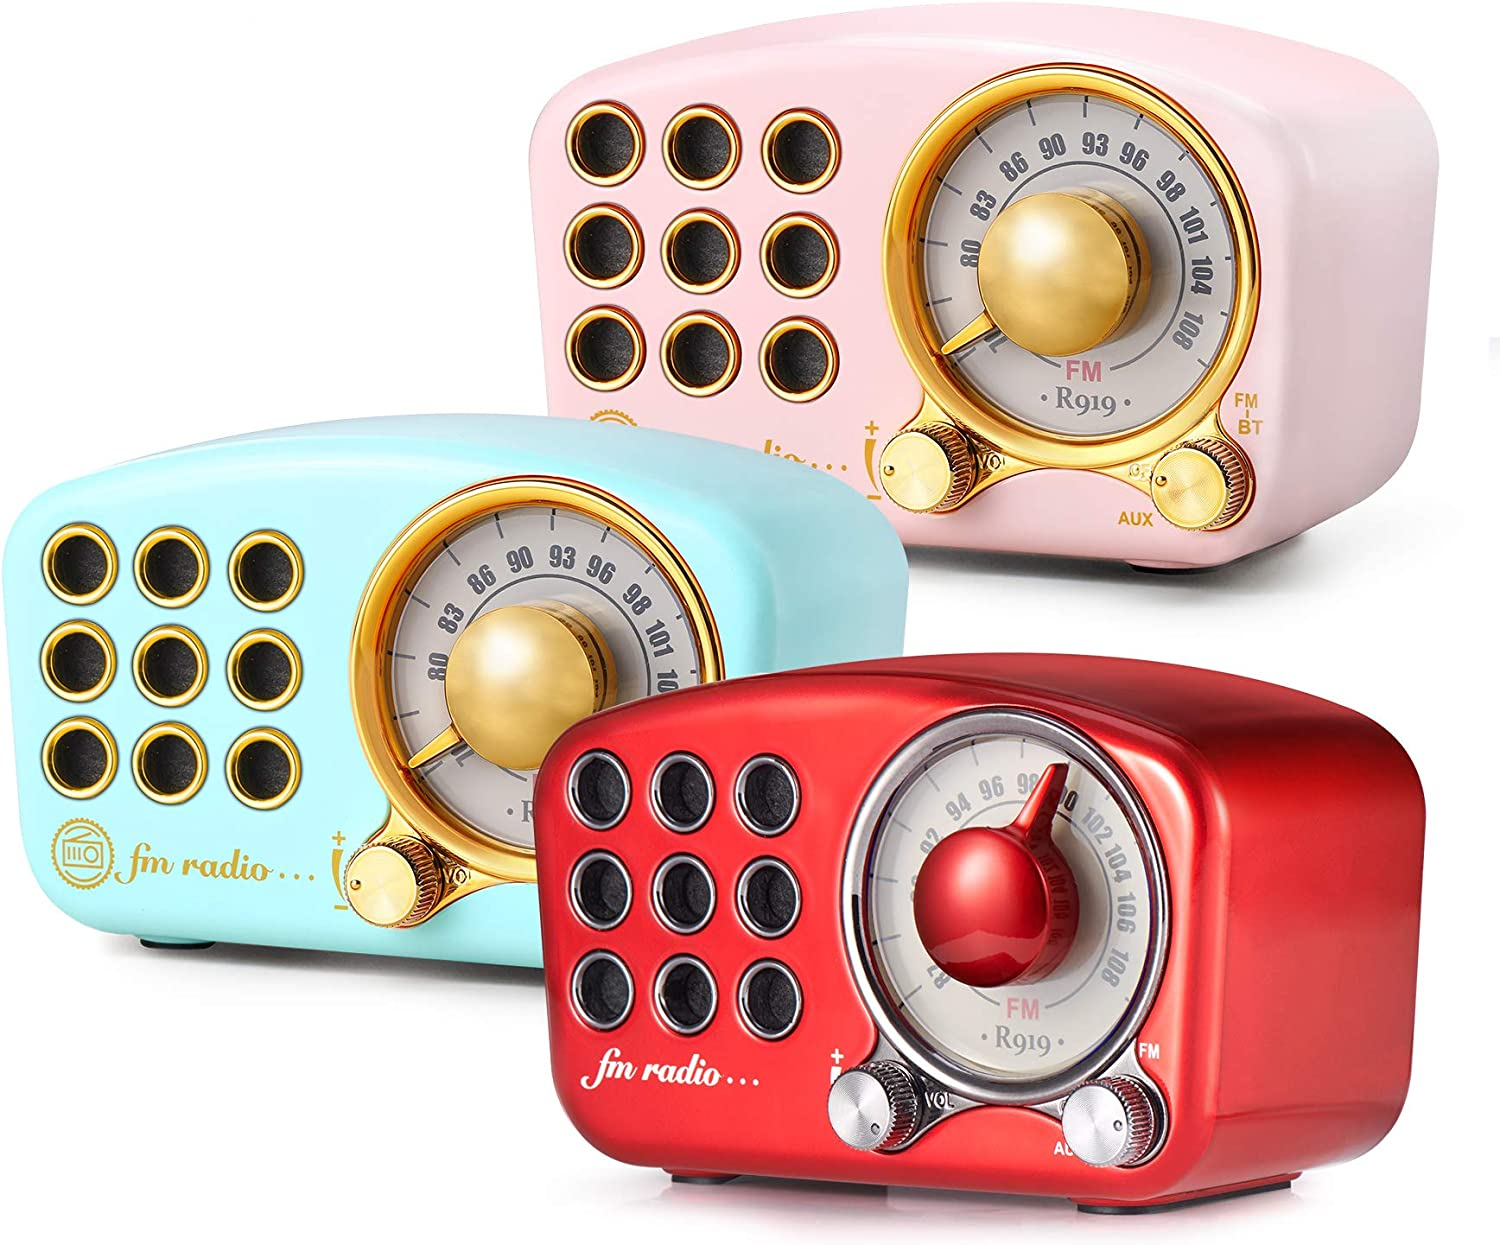 Retro Bluetooth Speaker, Vintage Radio-Greadio FM Radio with Old Fashioned Classic Style,Strong Bass Enhancement,Loud Volume,Bluetooth 4.2 Wireless Connection,TF Card and MP3 Player (Blue+Pink+Red)